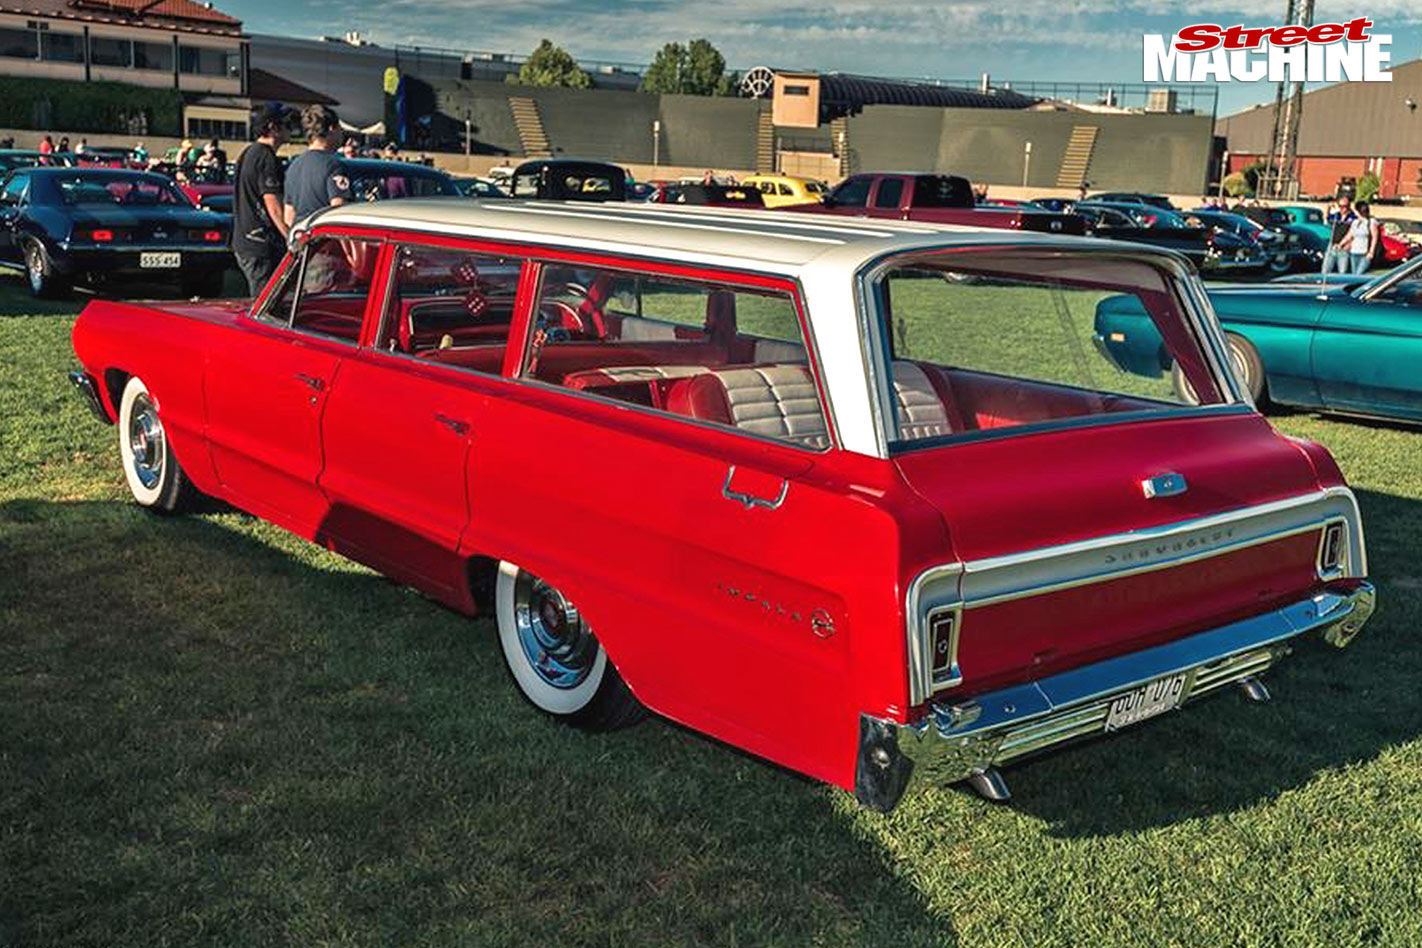 1964 Chevy wagon